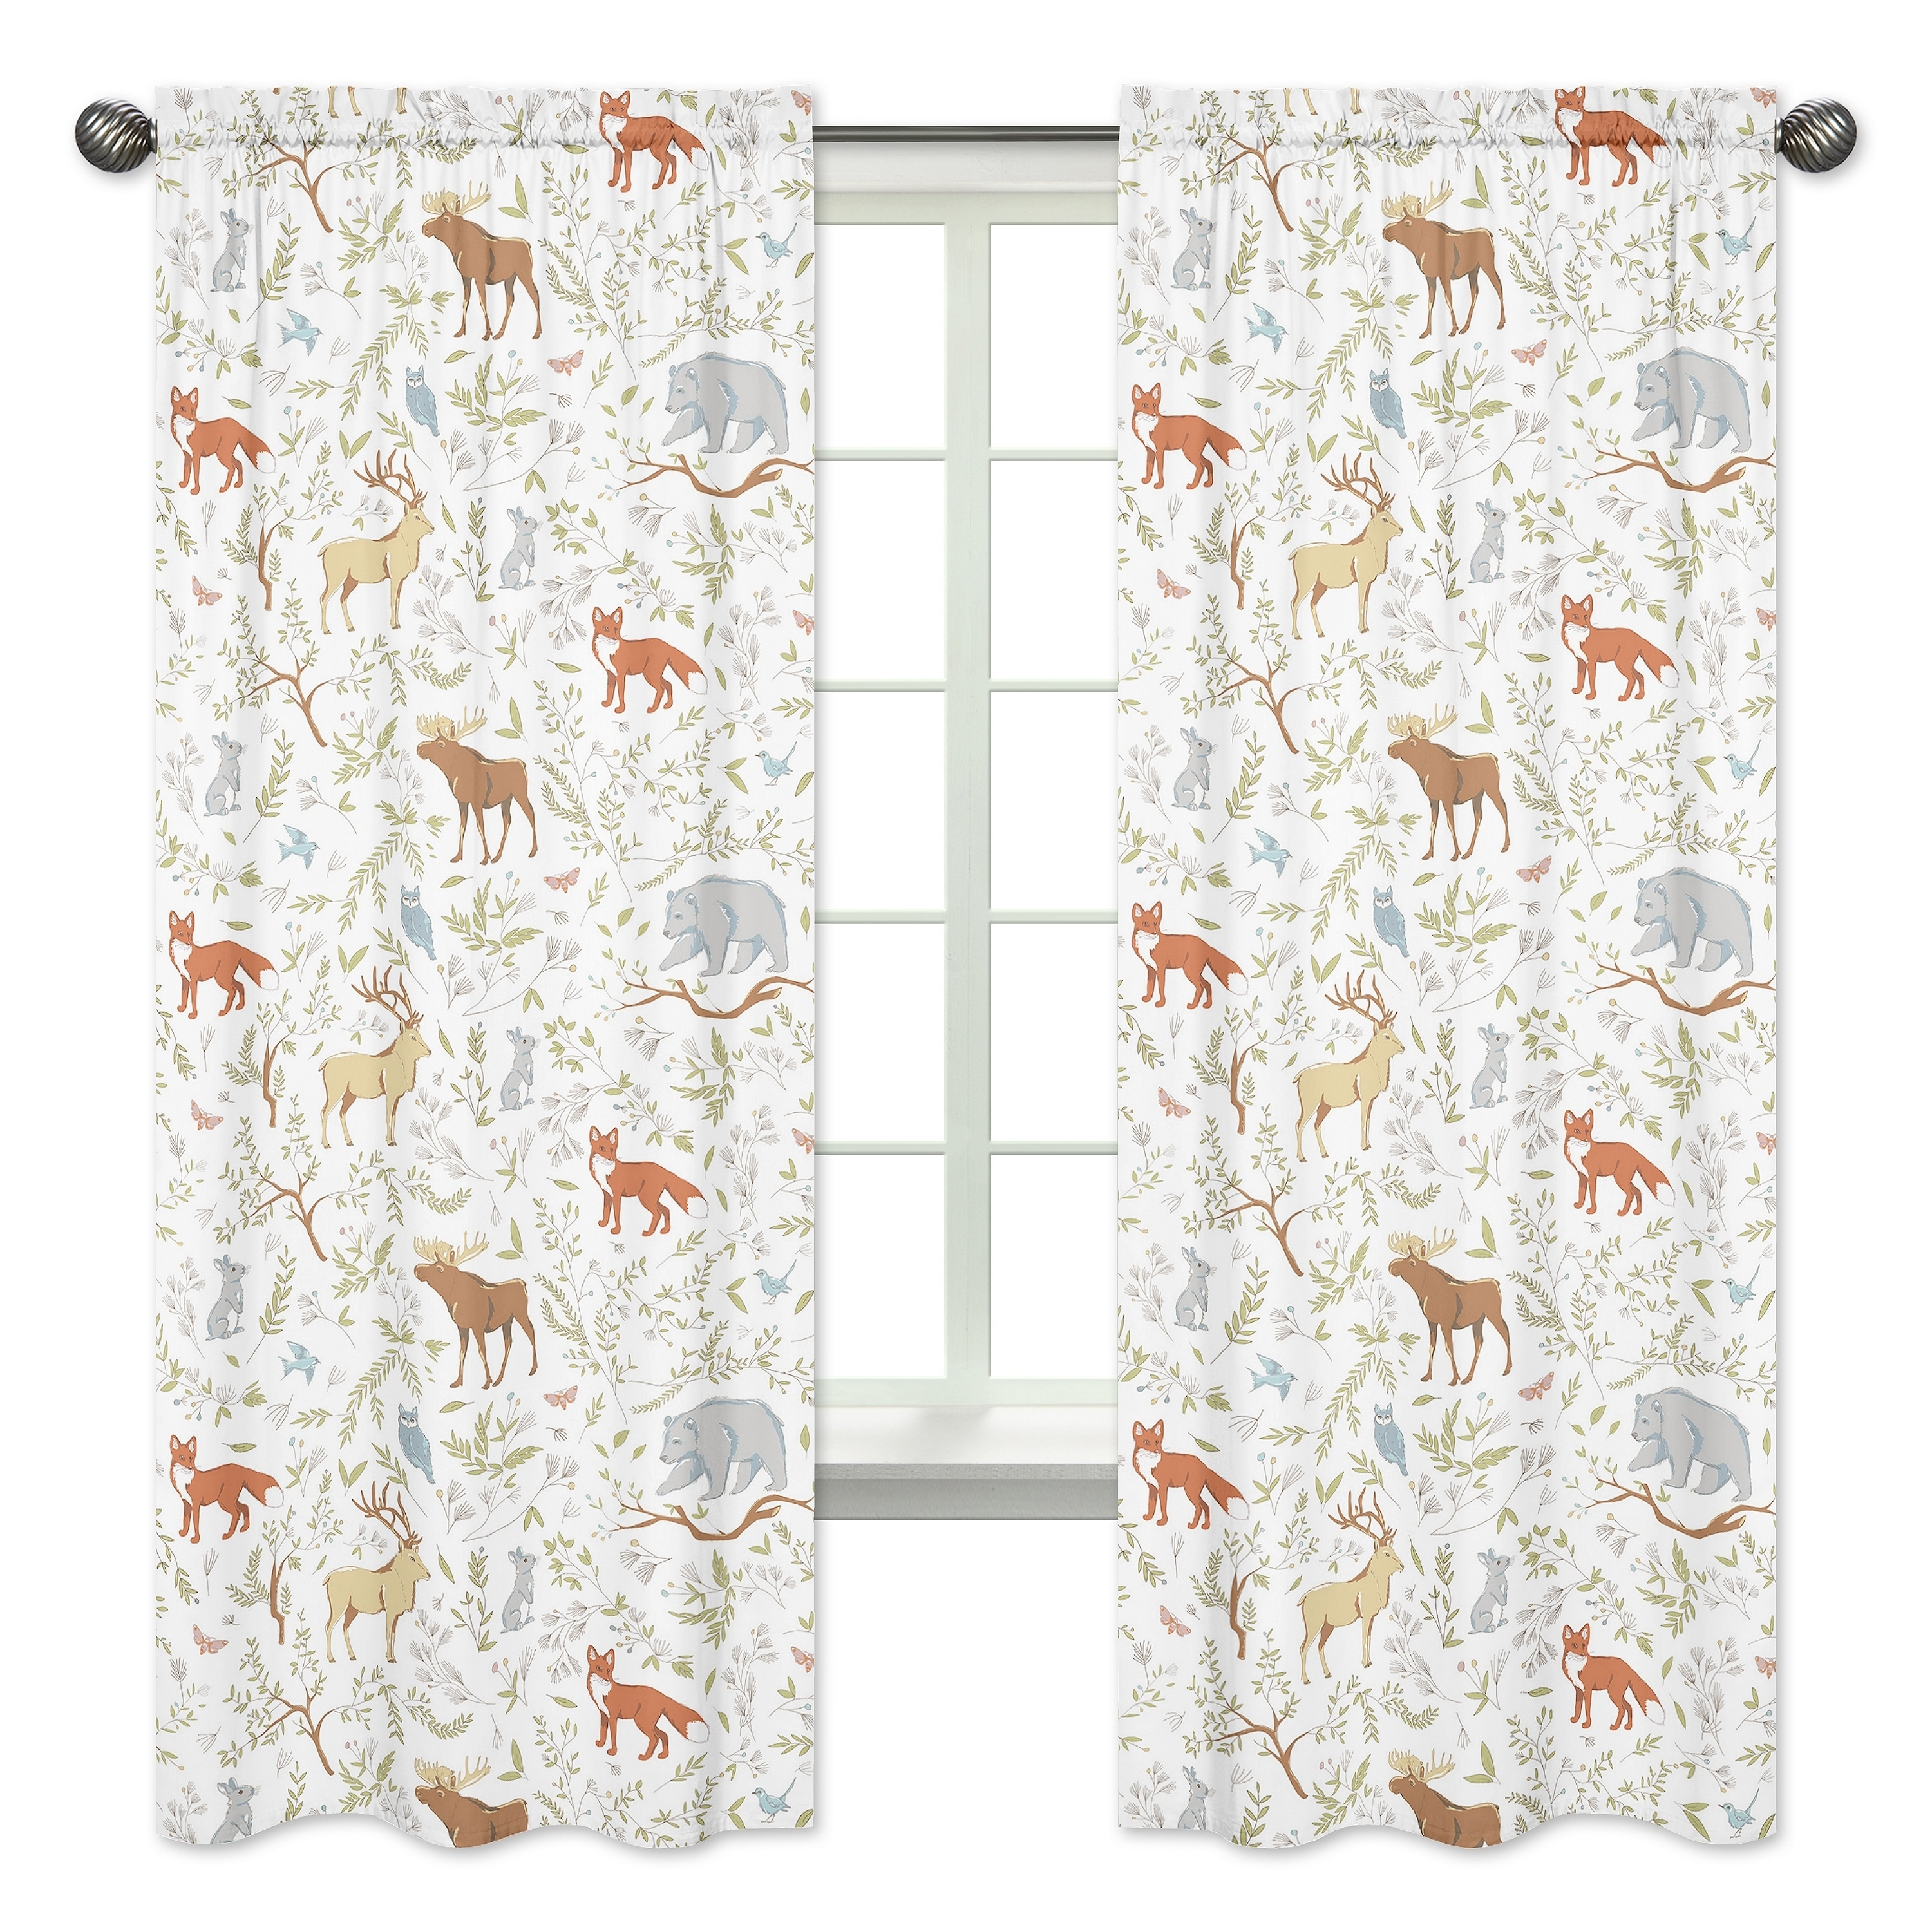 treatment satisfying valance size imposing of ch x treatments made covington white draperies drapes curtain prominent window and vintage french likable red floral toile black blue country curtains fabric bewitch shower provence bosporus yellow custom amazing cream full for